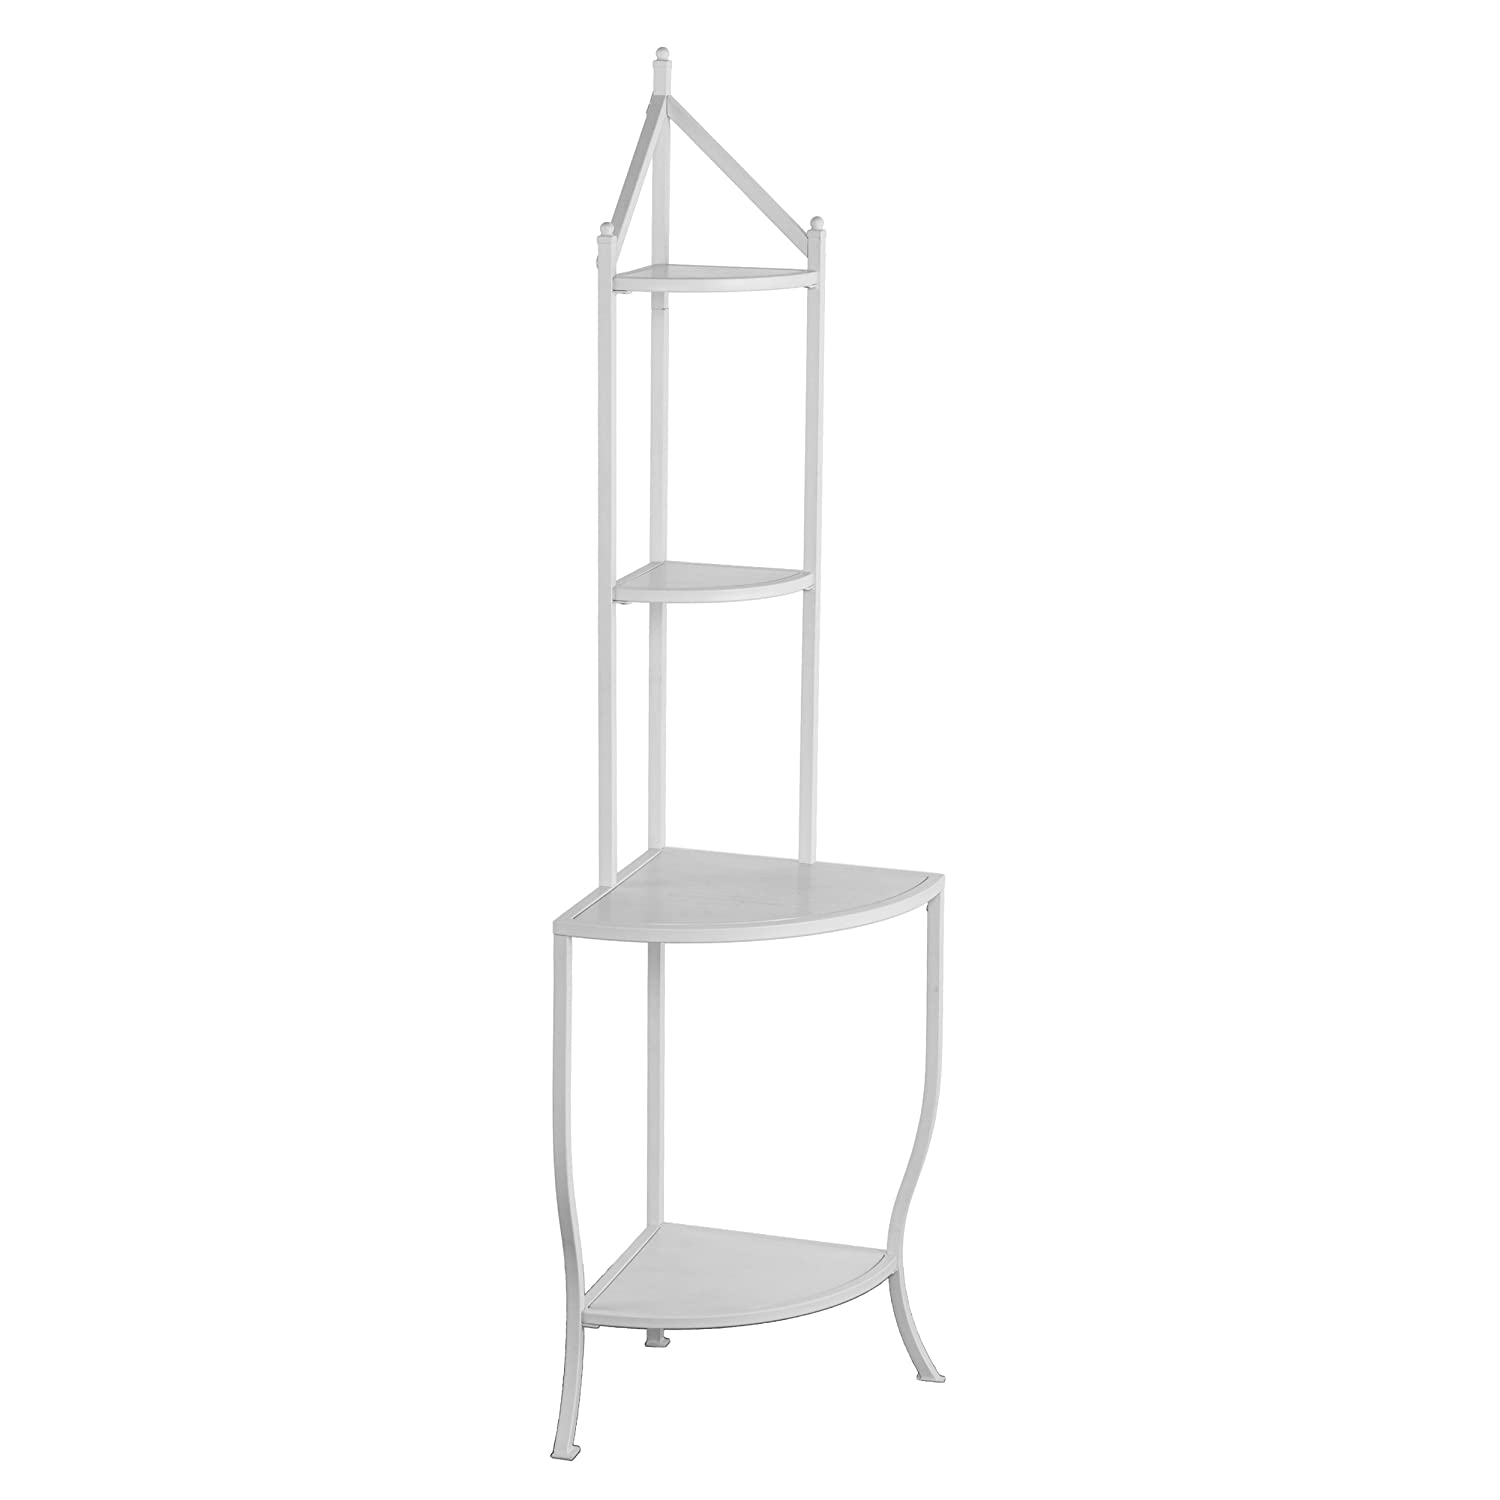 Furniture HotSpot Corner Bakers Rack - White - 25.5